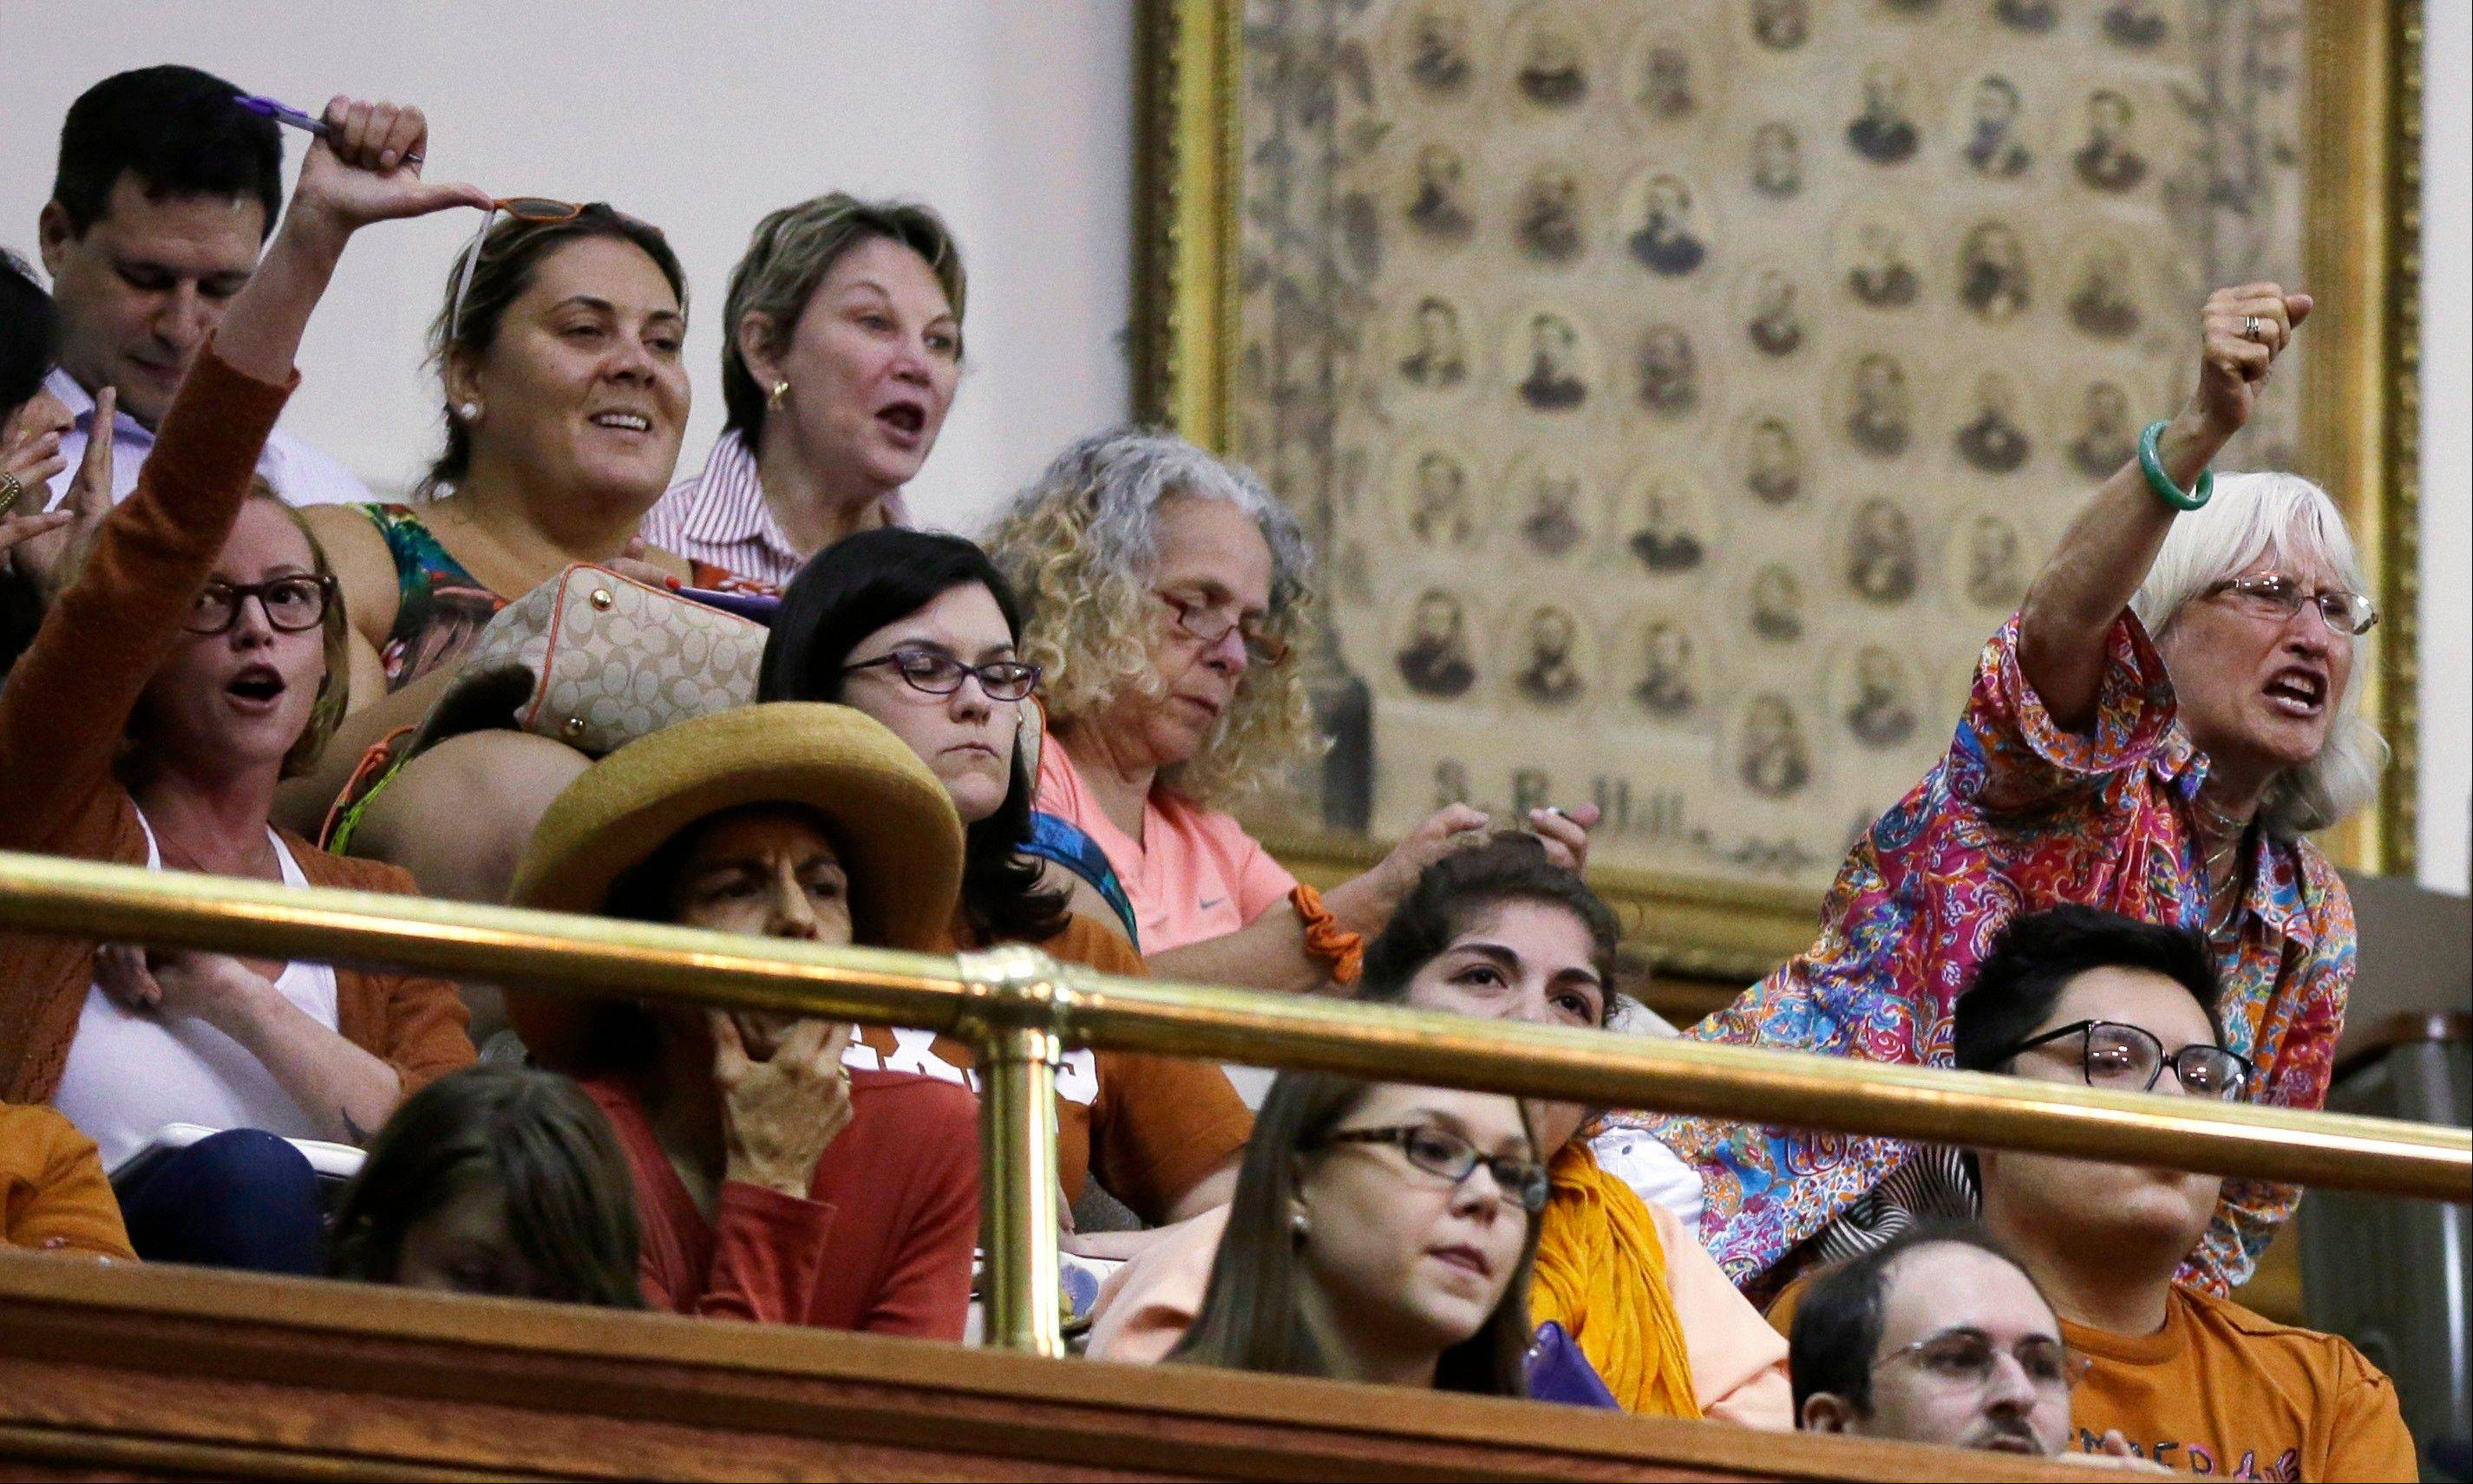 Members of the gallery respond as Sen. Wendy Davis, D-Fort Worth, is called for a third and final violation in rules to end her filibuster attempt to kill an abortion bill, Tuesday, June 25, 2013, in Austin, Texas. The bill would ban abortion after 20 weeks of pregnancy and force many clinics that perform the procedure to upgrade their facilities and be classified as ambulatory surgical centers.